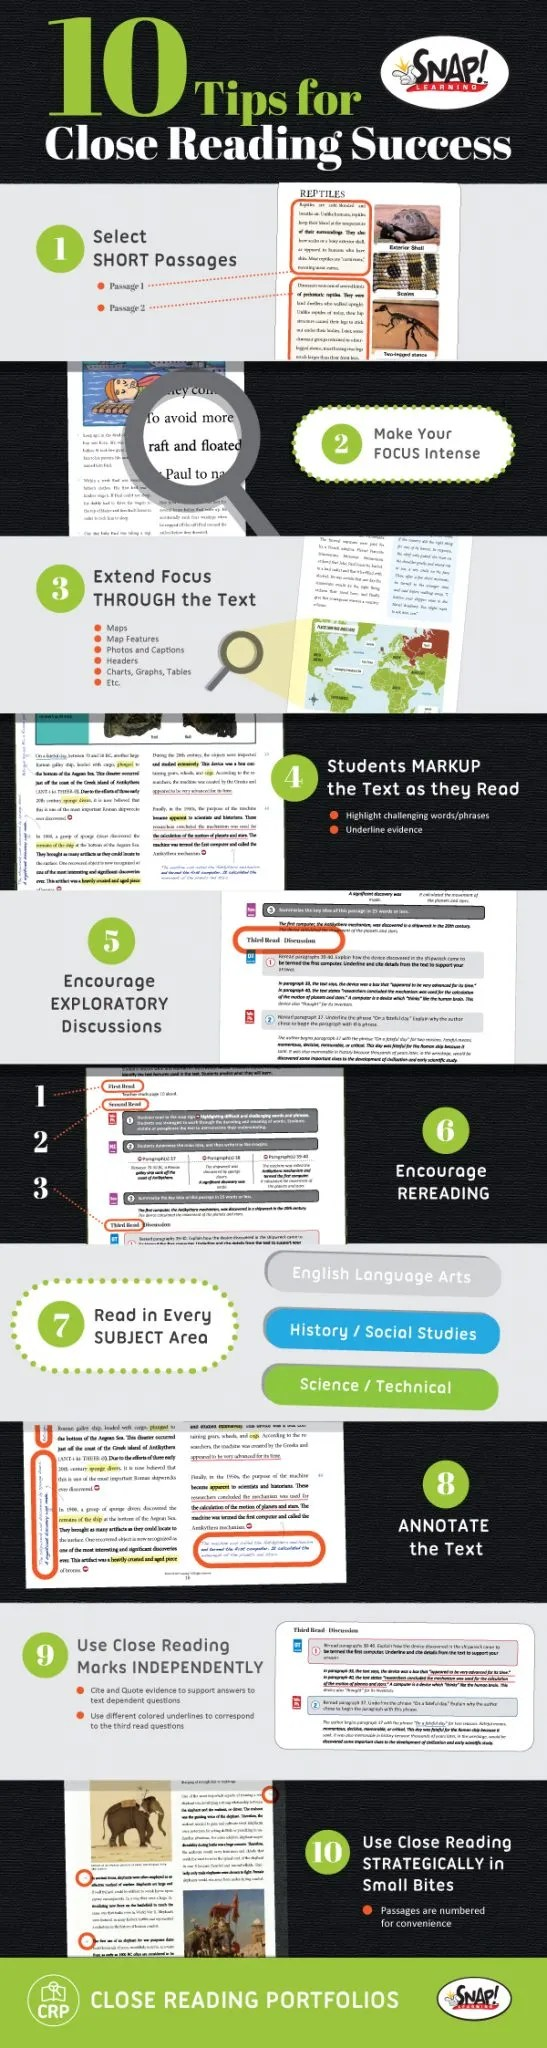 close reading tips for close reading activities infographic